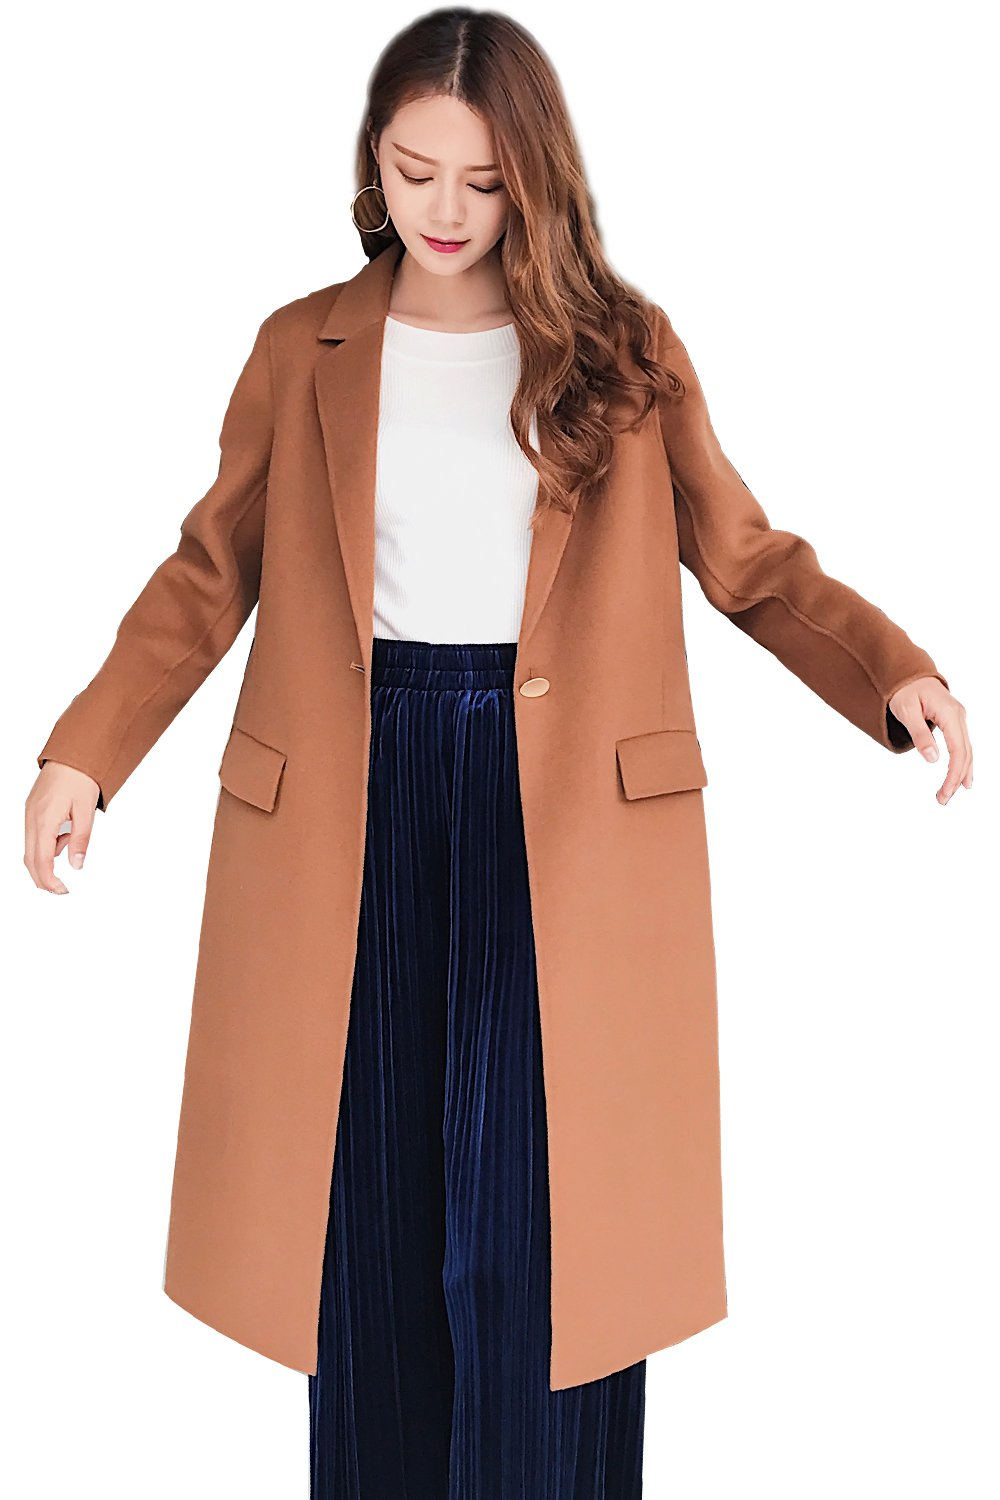 France CG Wool Coat for Women Double Sided 100% Wool Classic Camel Warm Winter G0023 (XXL, Classic Camel)